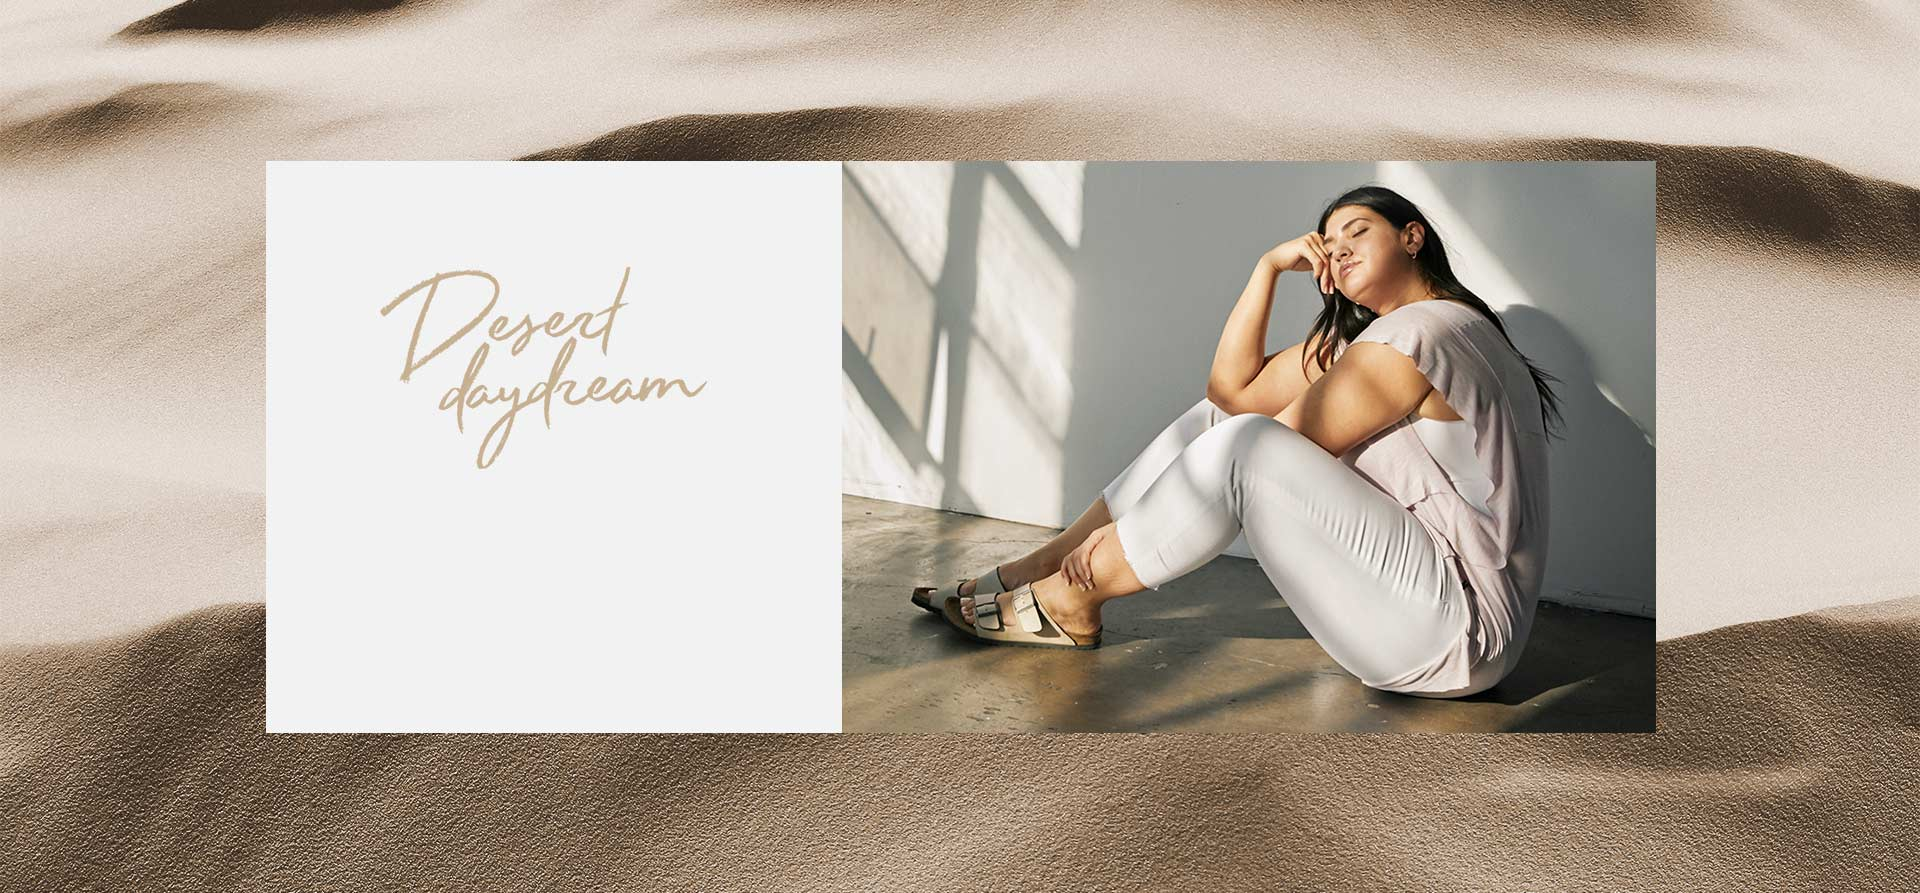 8e61dcf633a Silver Jeans Co. - Desert daydream - Sun-filled days are coming. Our